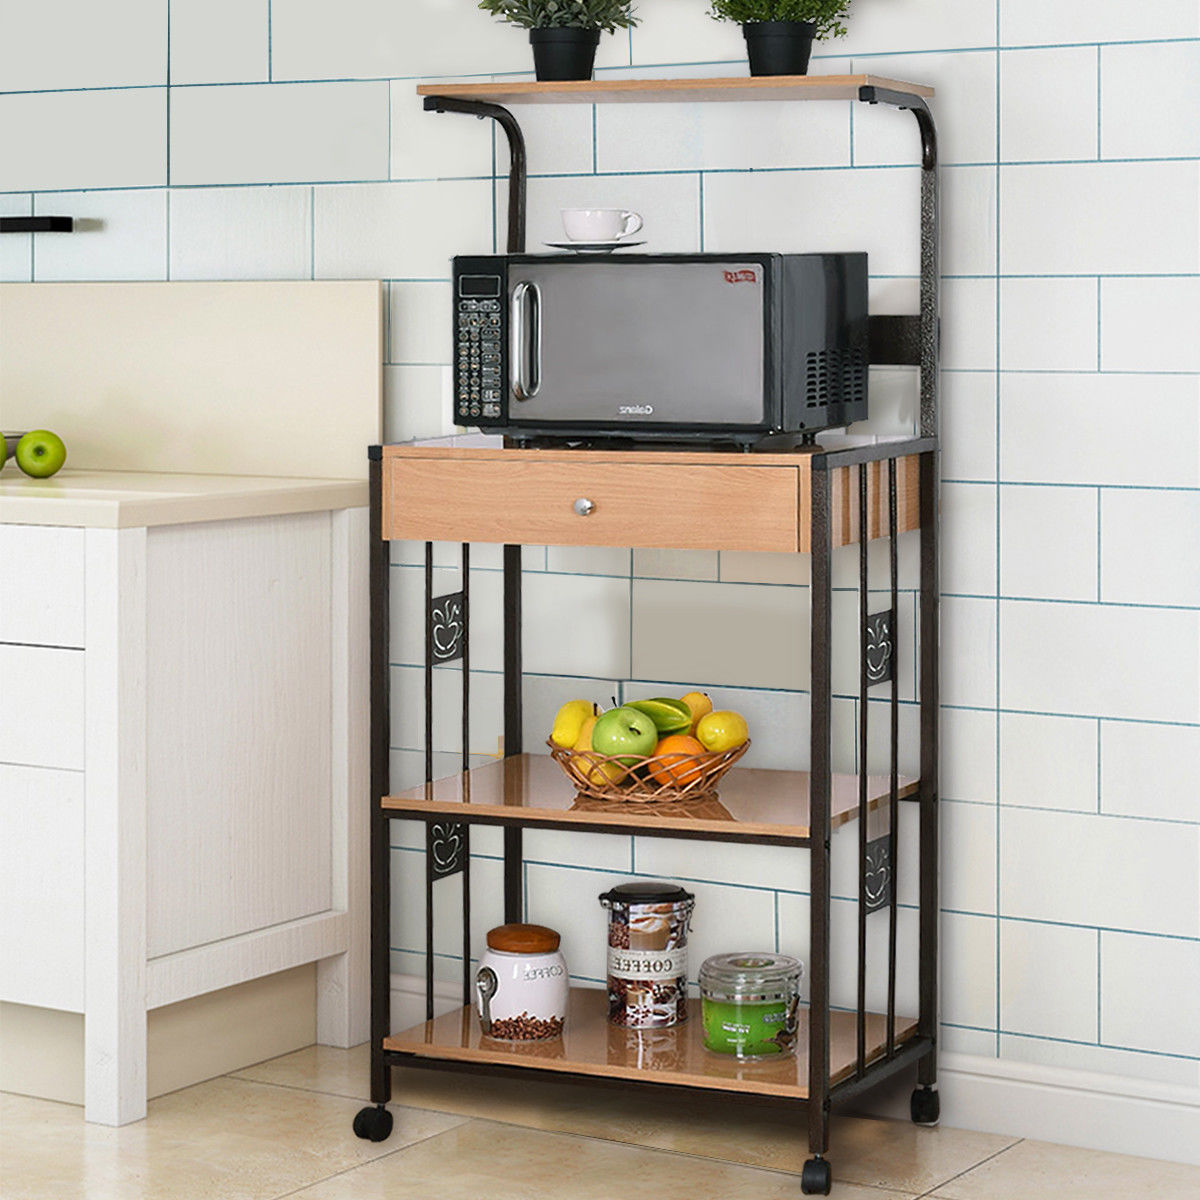 Costway 59u0027u0027 Bakers Rack Microwave Stand Rolling Kitchen Storage Cart  W/Electric Outlet   Walmart.com